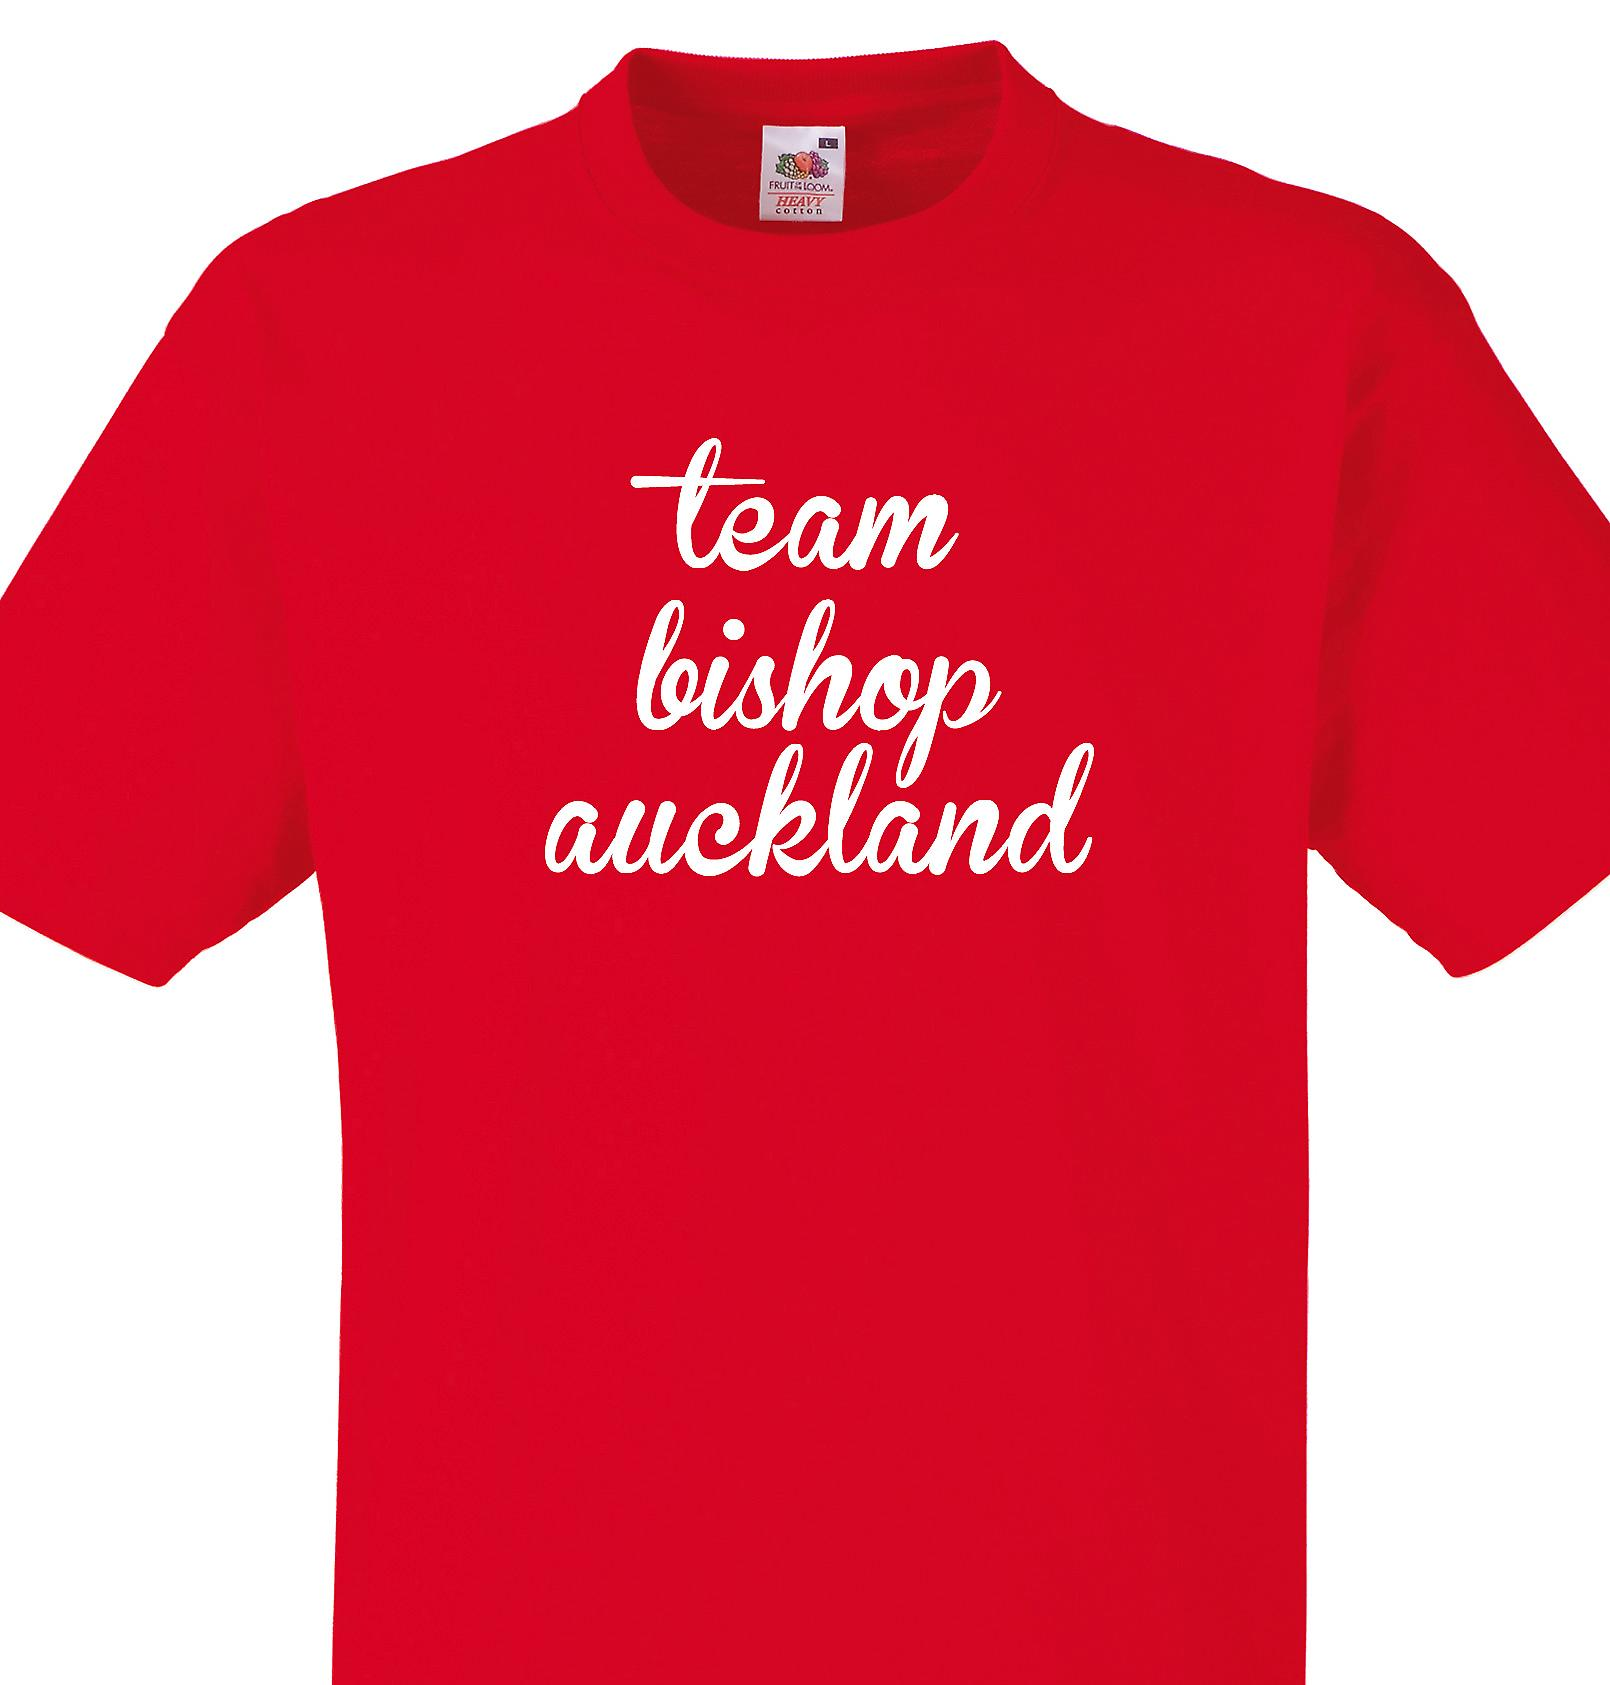 Team Bishop auckland Red T shirt